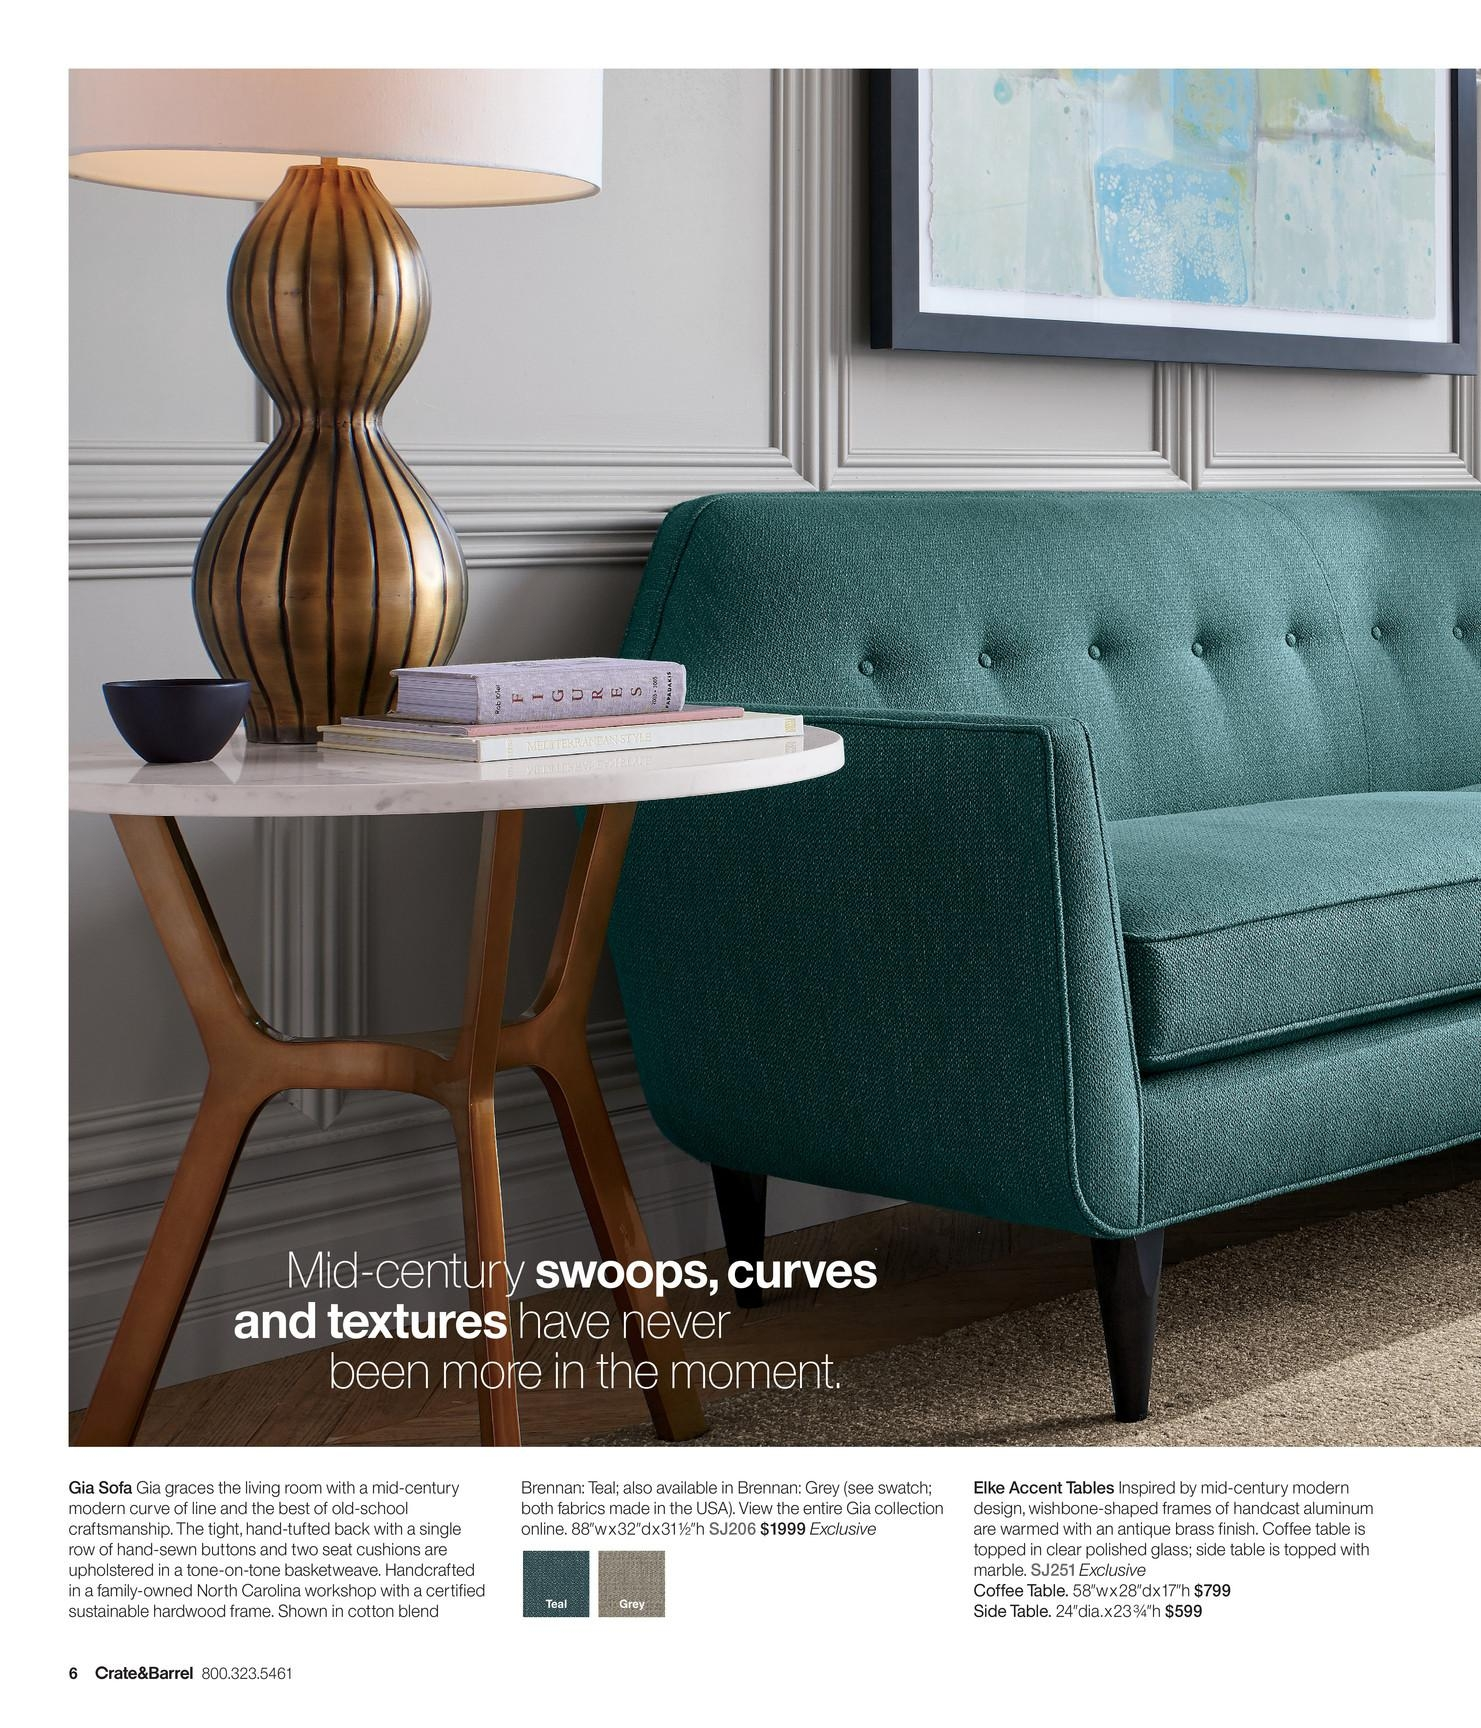 Crate And Barrel Sofa Table   Sofa Gallery   Kengire With Crate And Barrel Sofa Tables (Image 8 of 20)